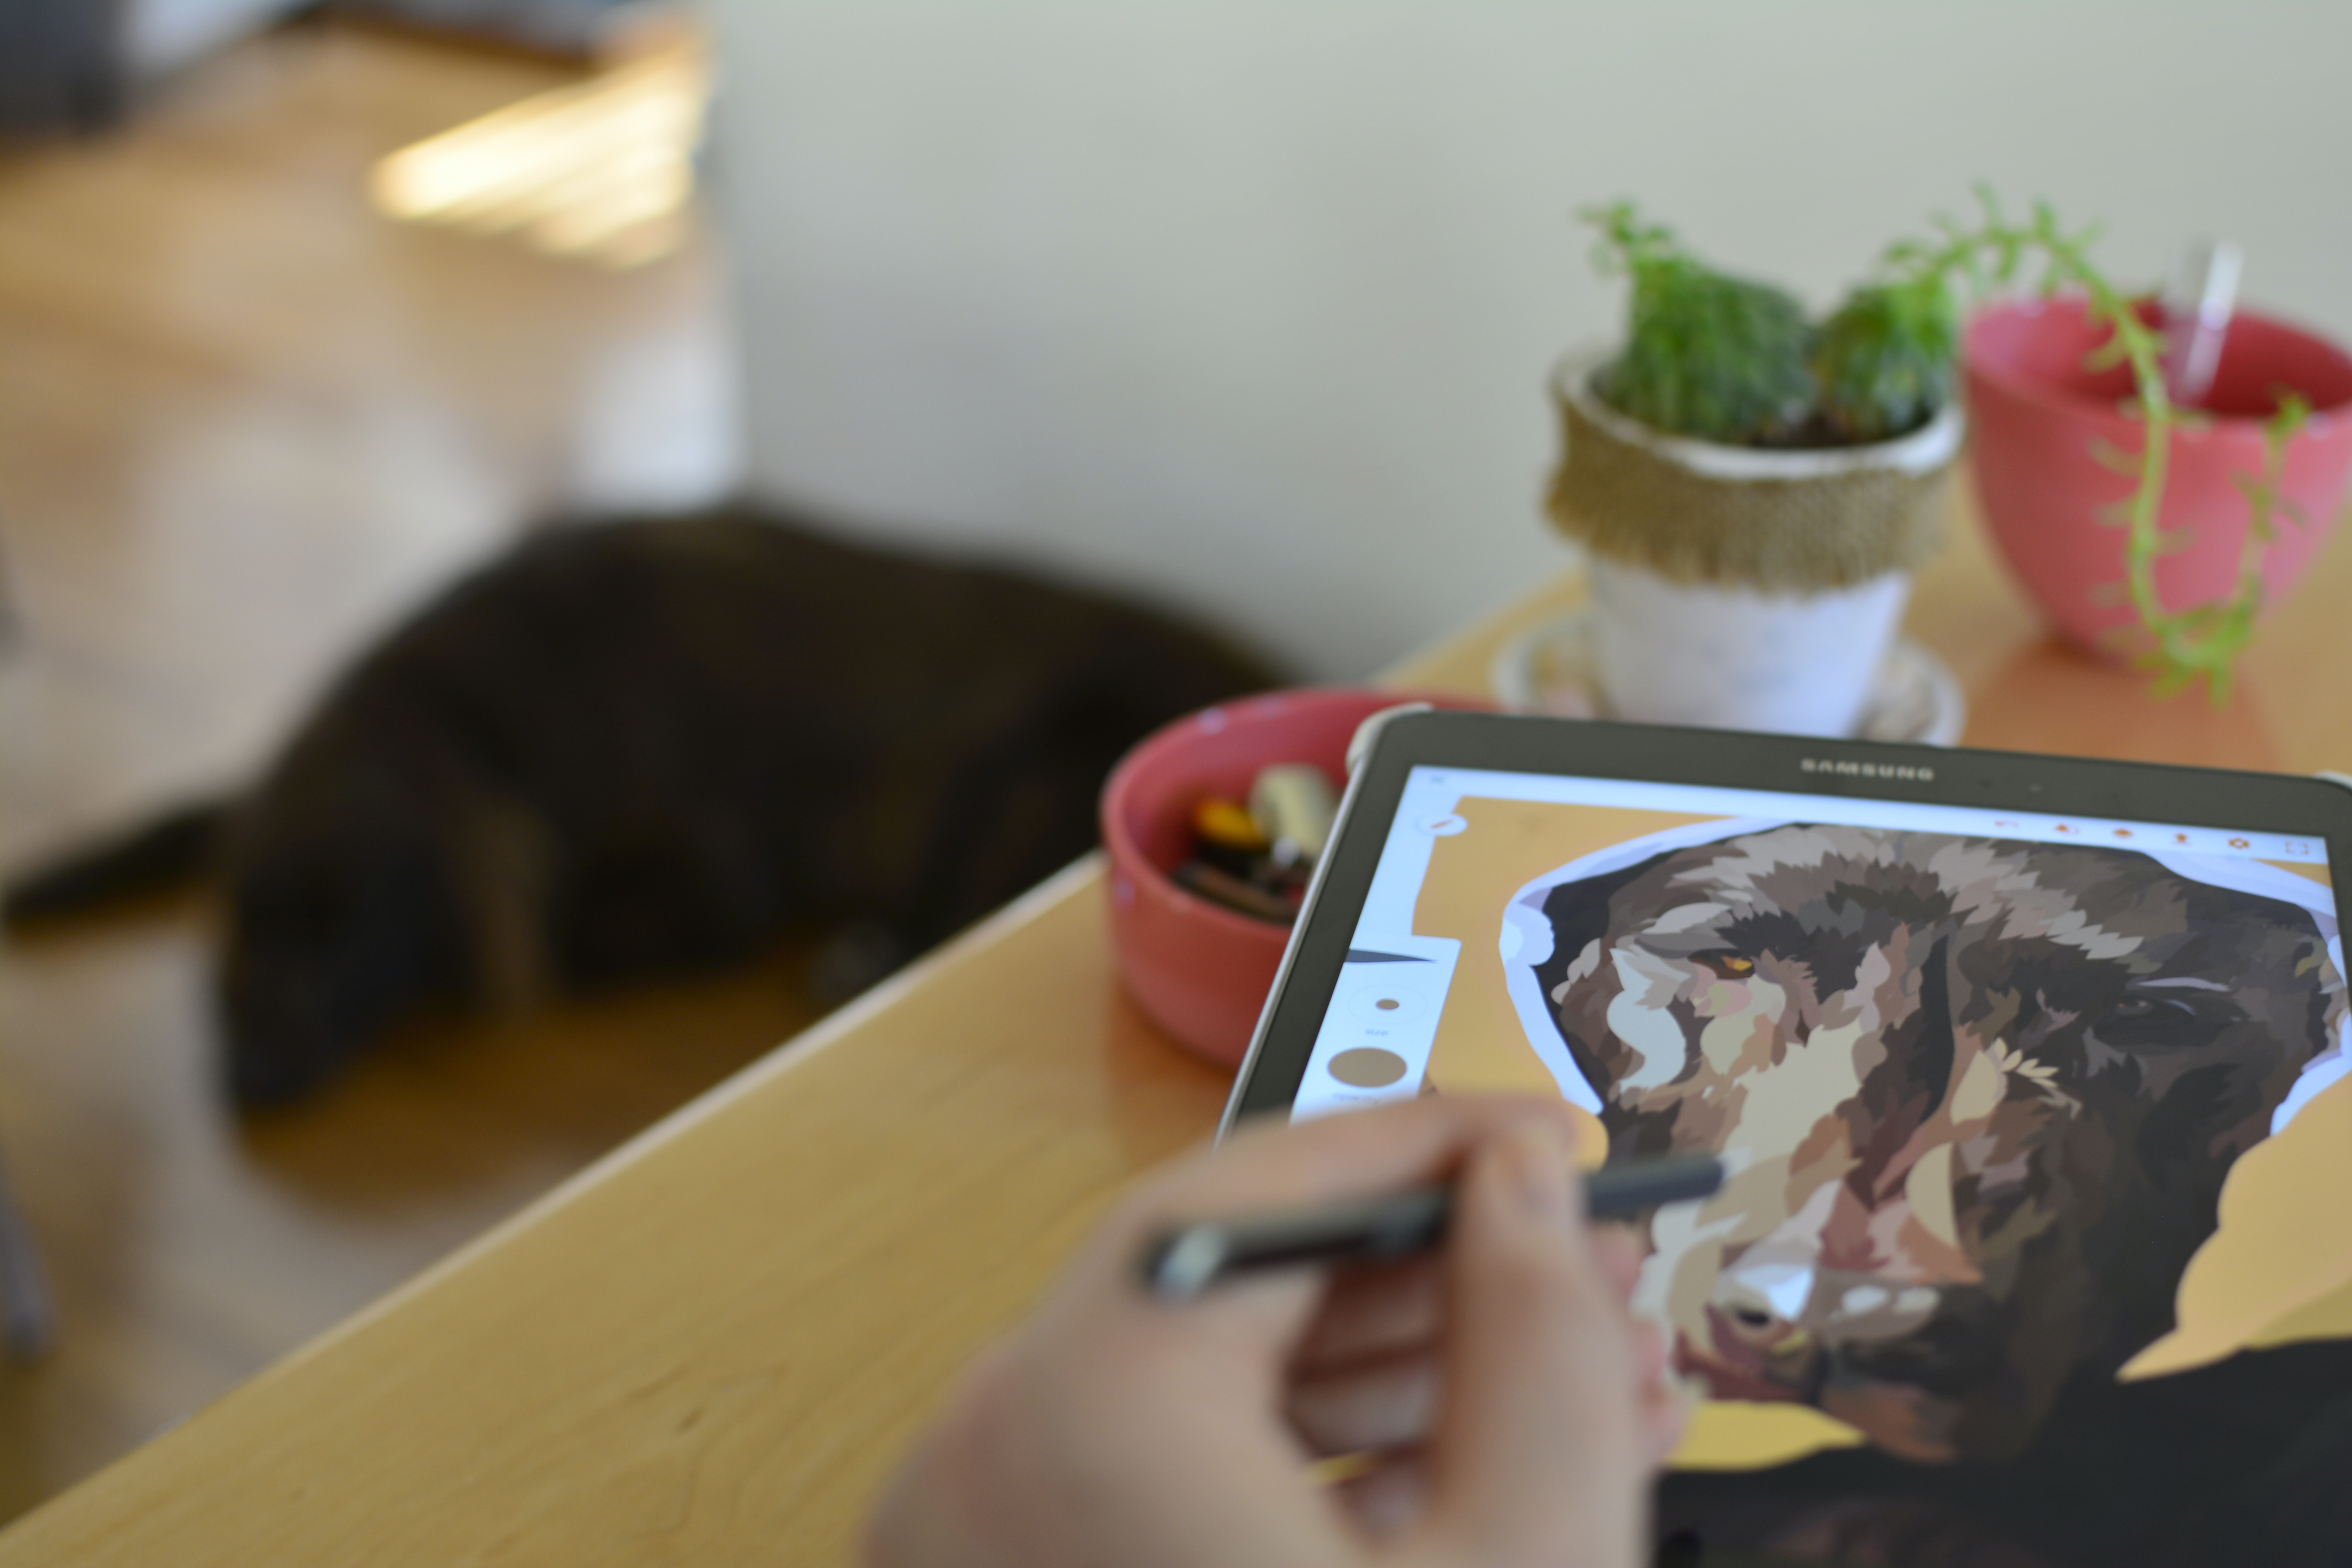 drawing a dog illustration in a tablet